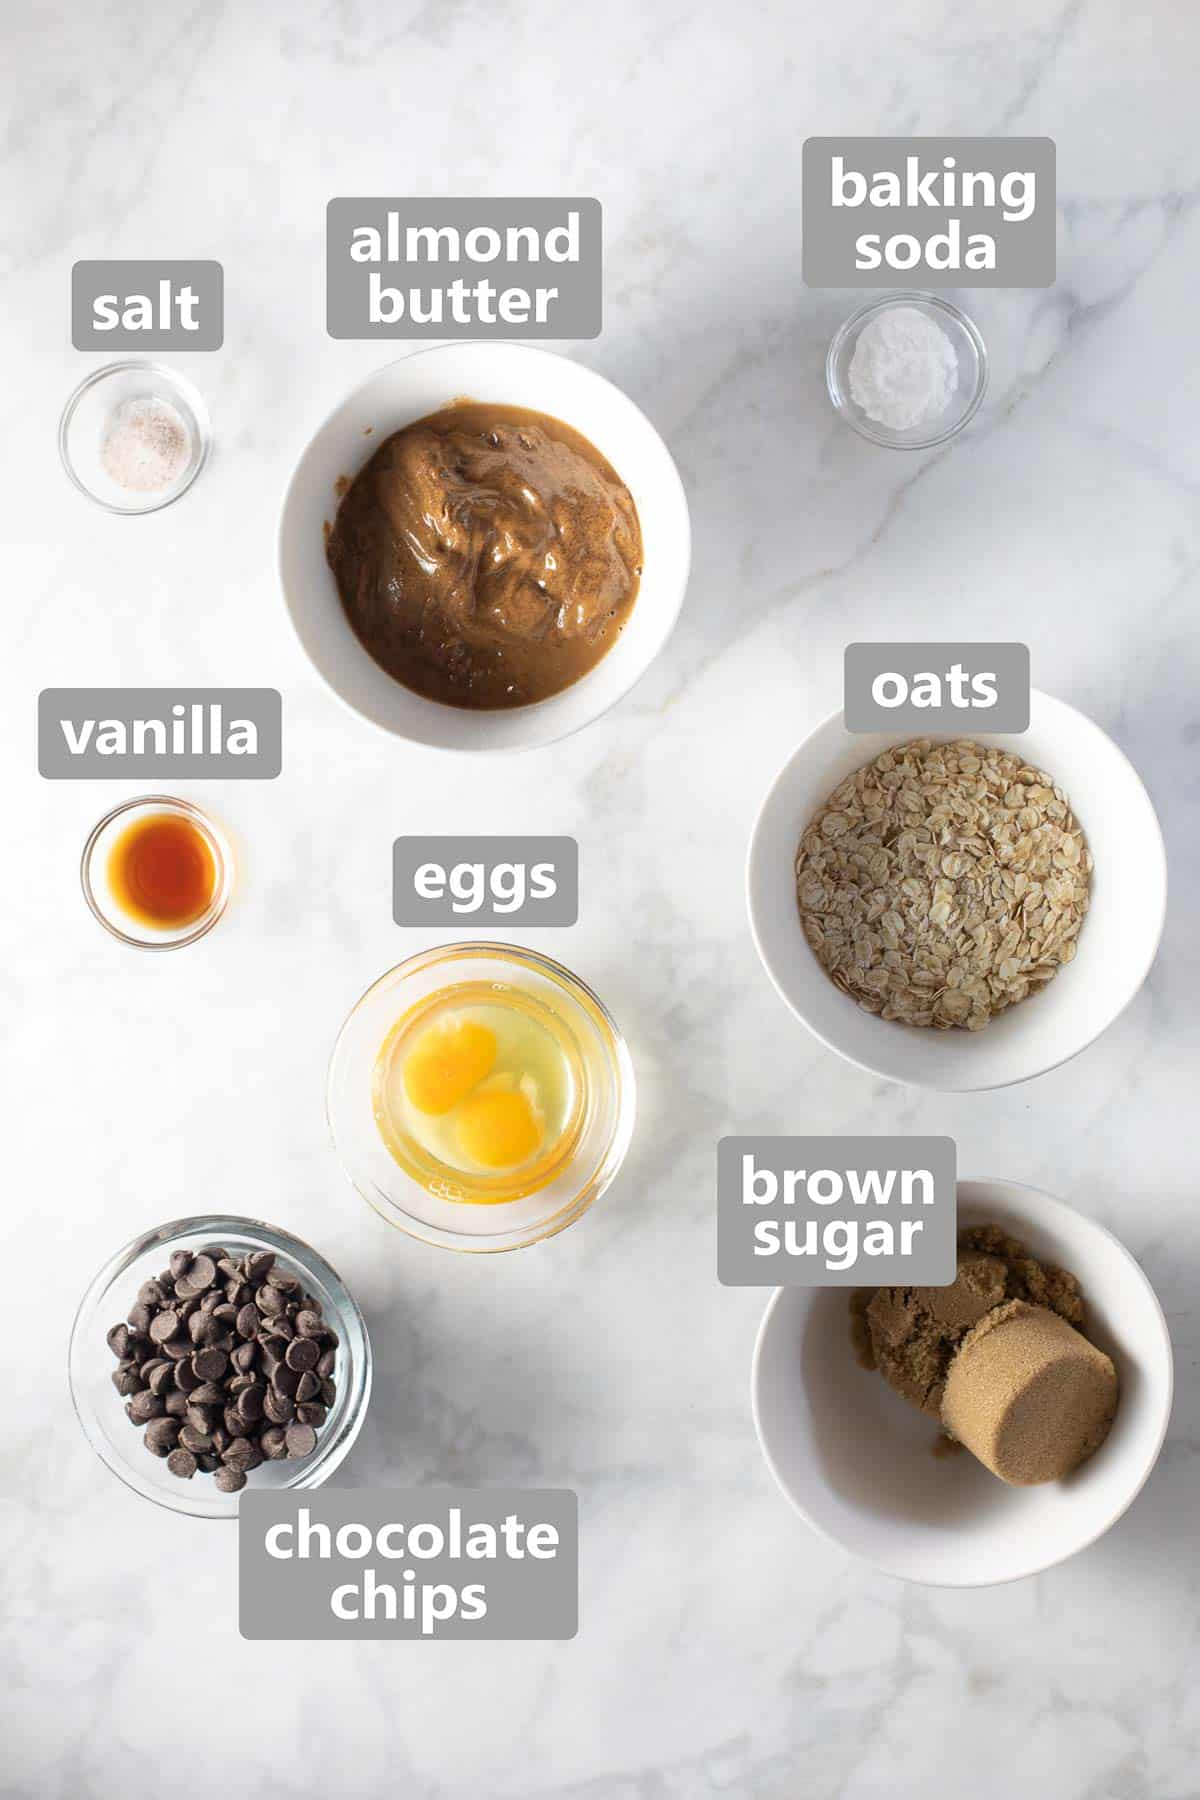 ingredients set out in bowls on marble background